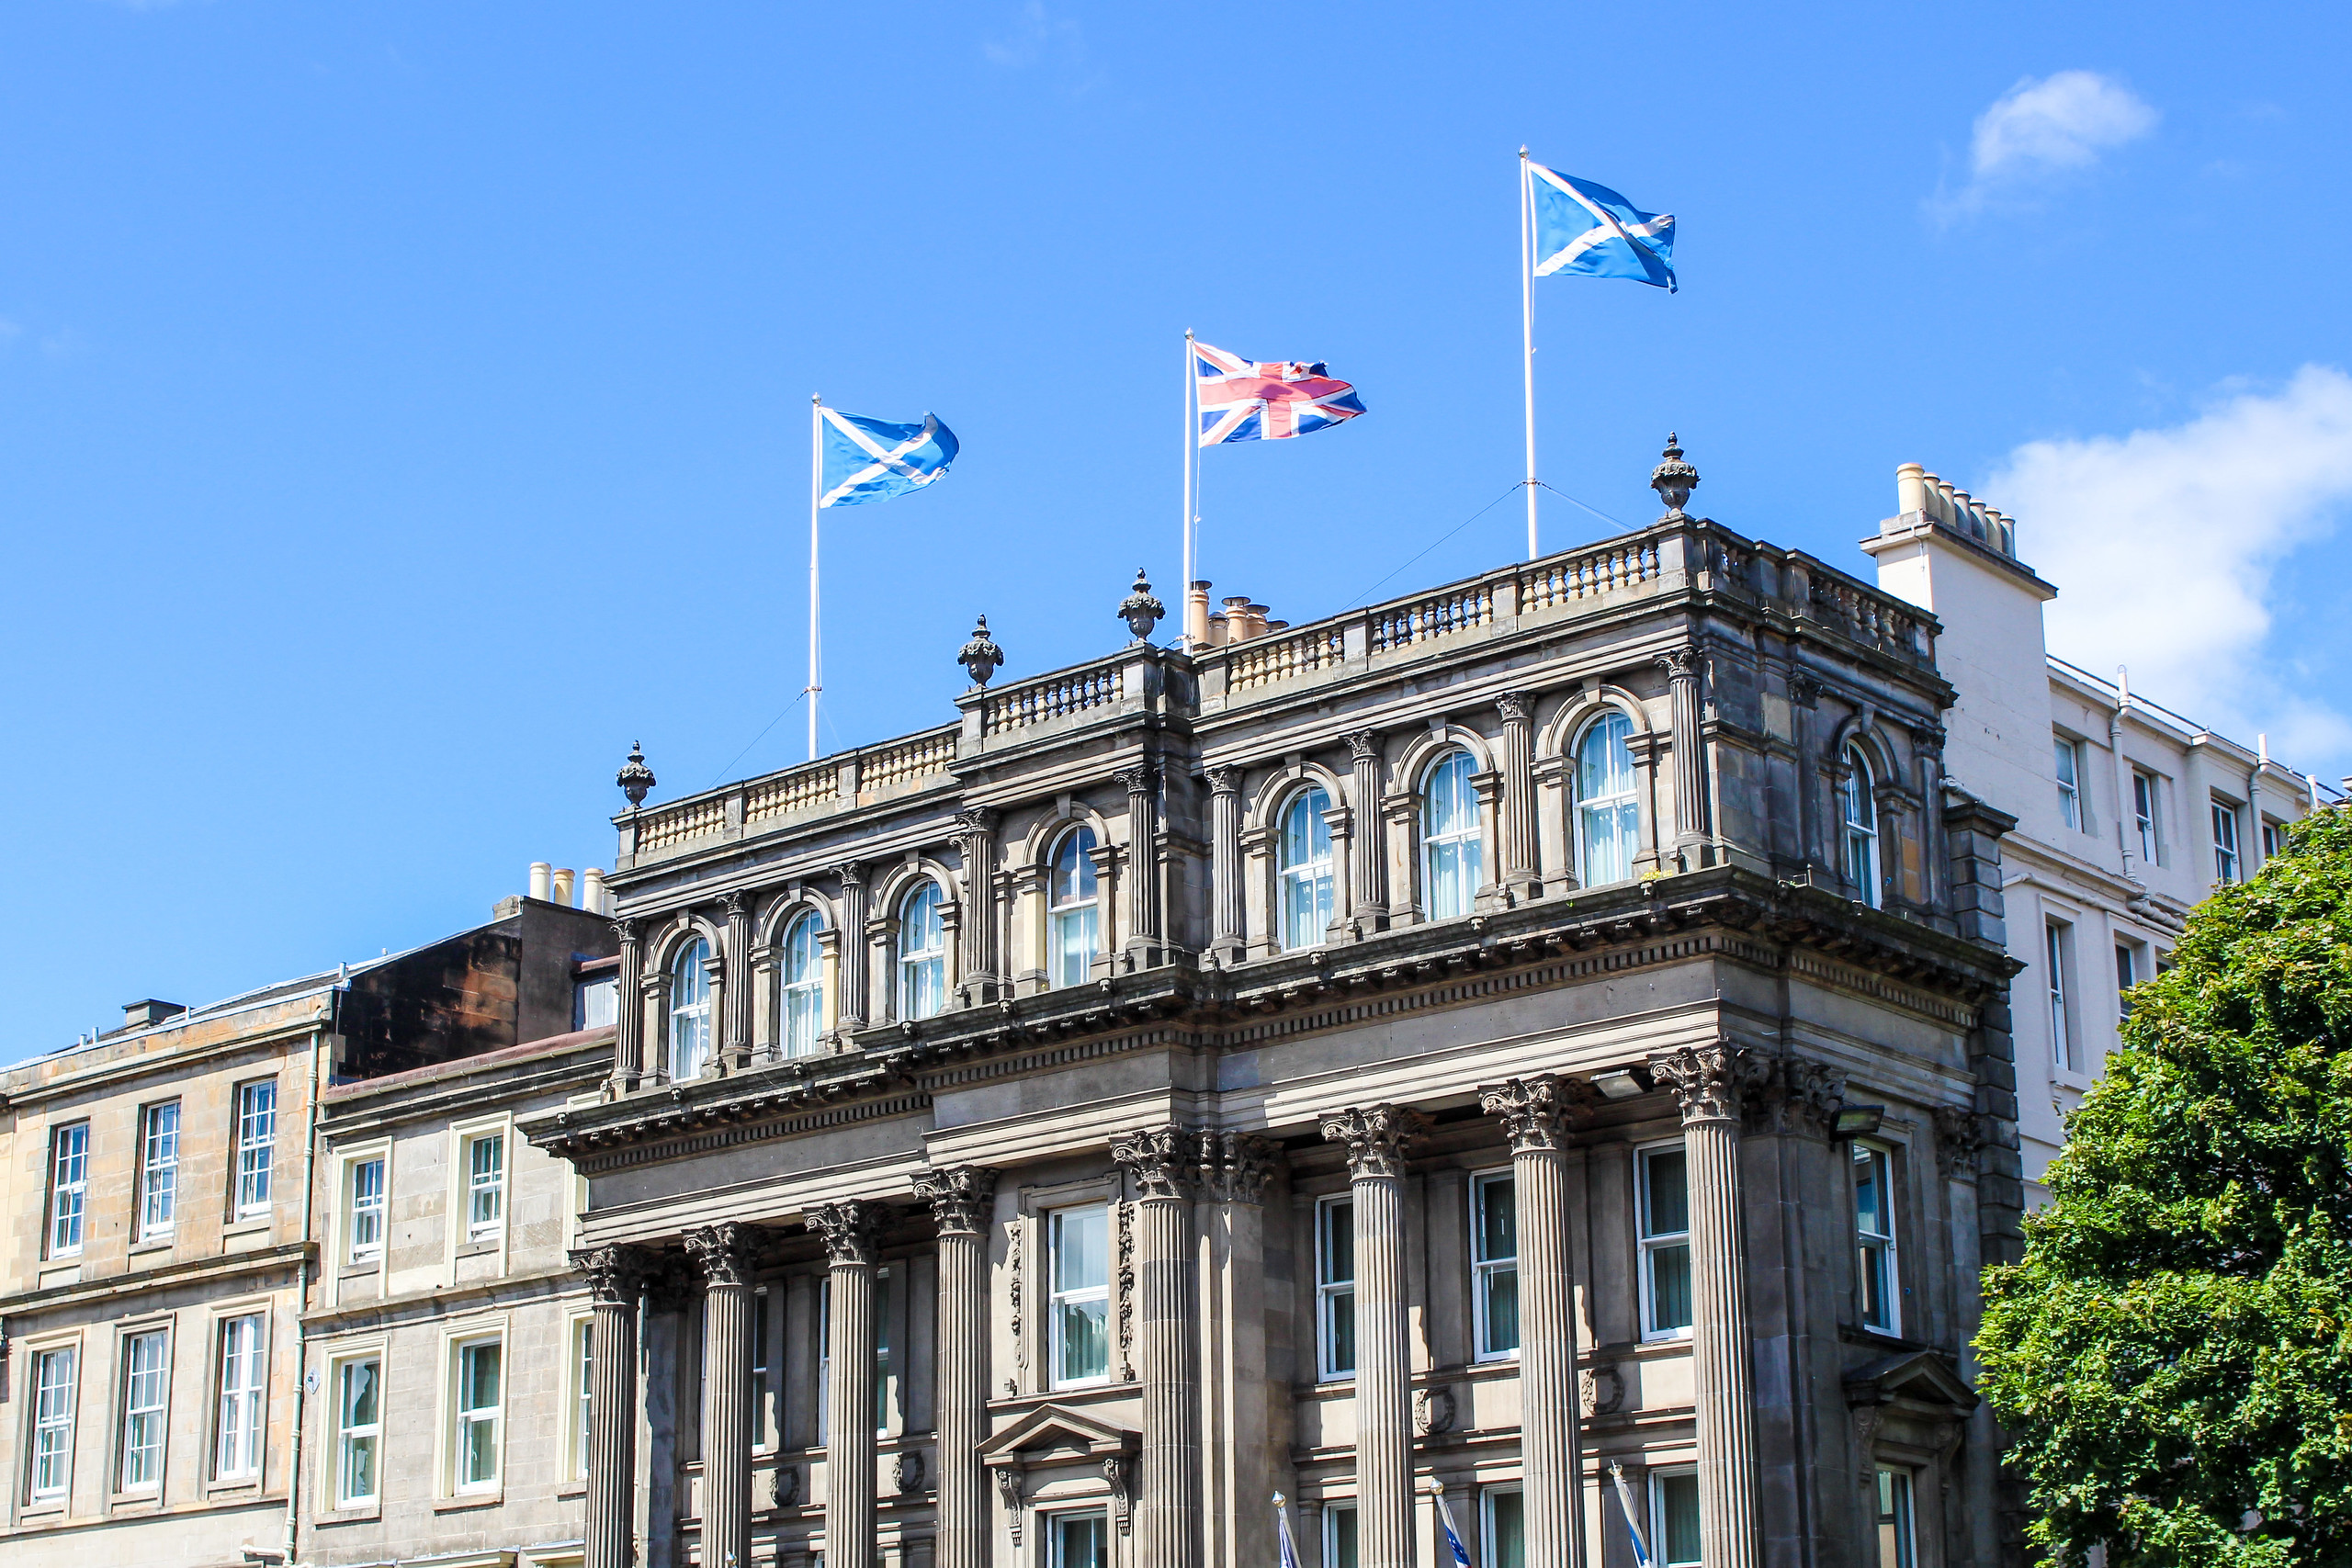 two days in edinburgh: enjoy a sunny day in the city